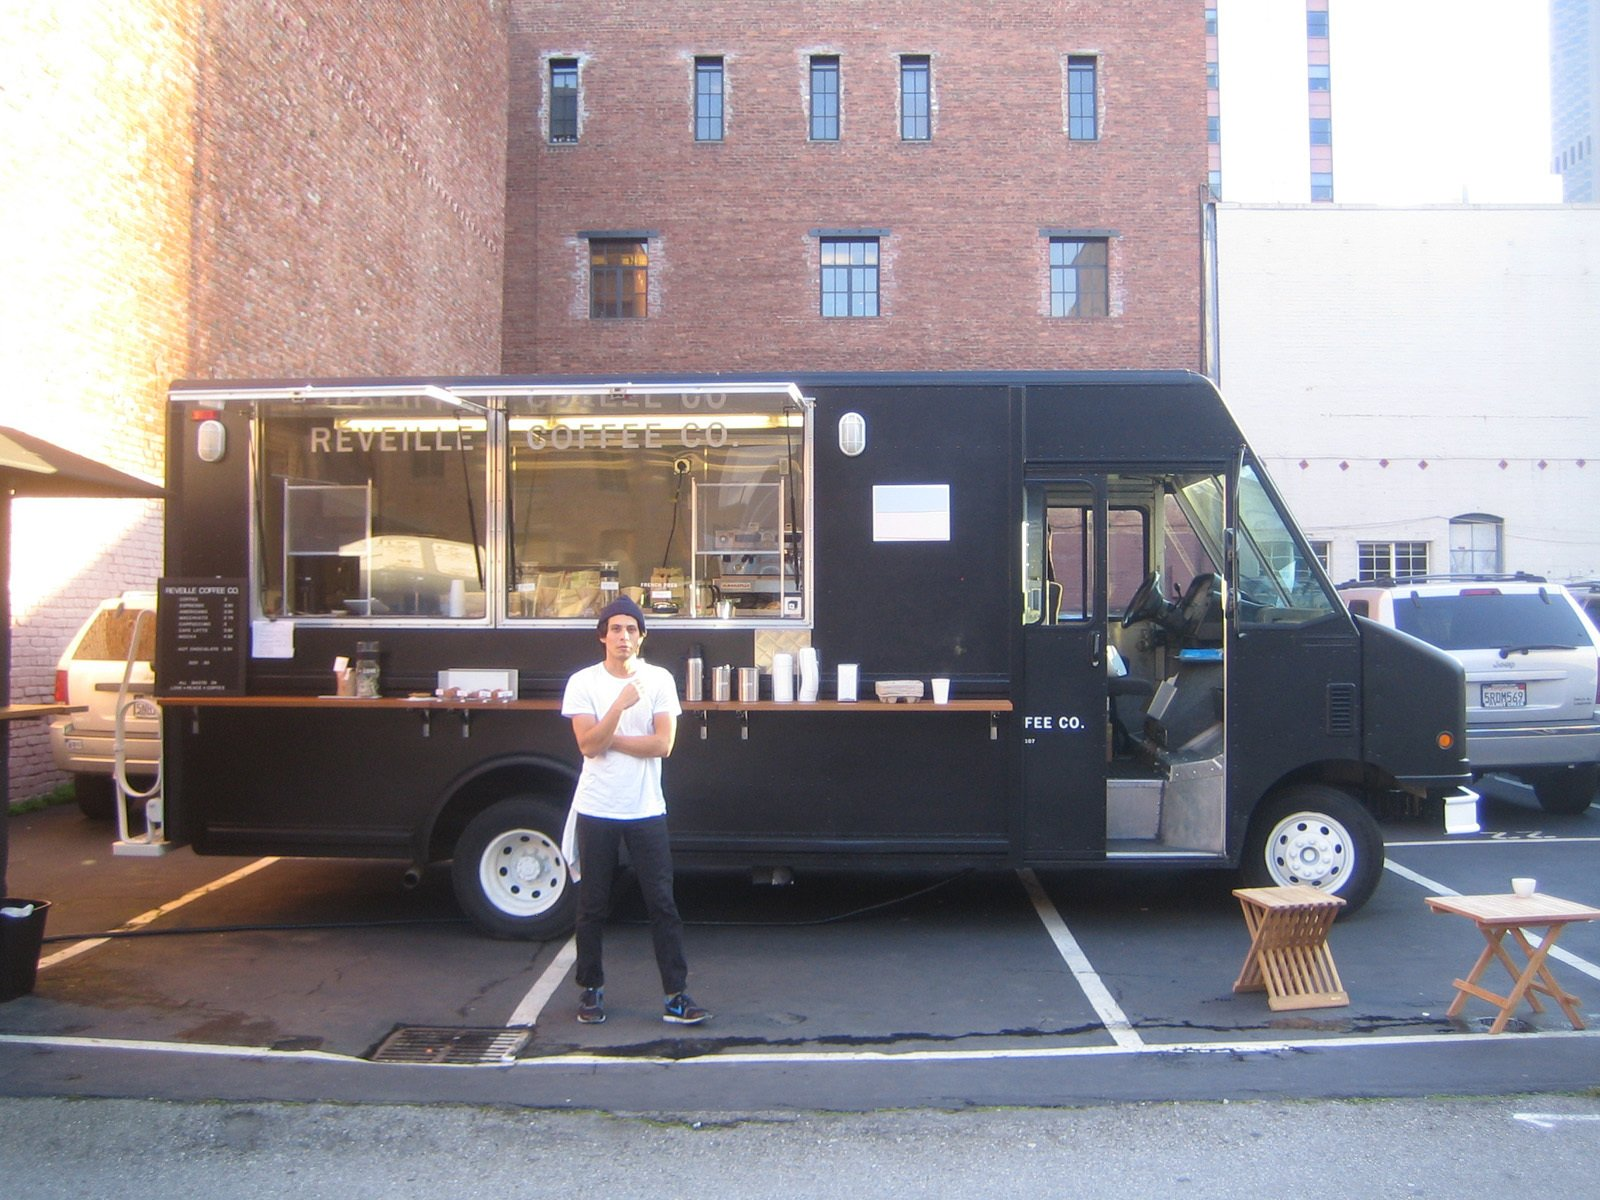 The Réveille Coffee Company's truck parked on Pacific Street in San Francisco.  Photo 8 of 8 in Réveille Coffee Company Truck